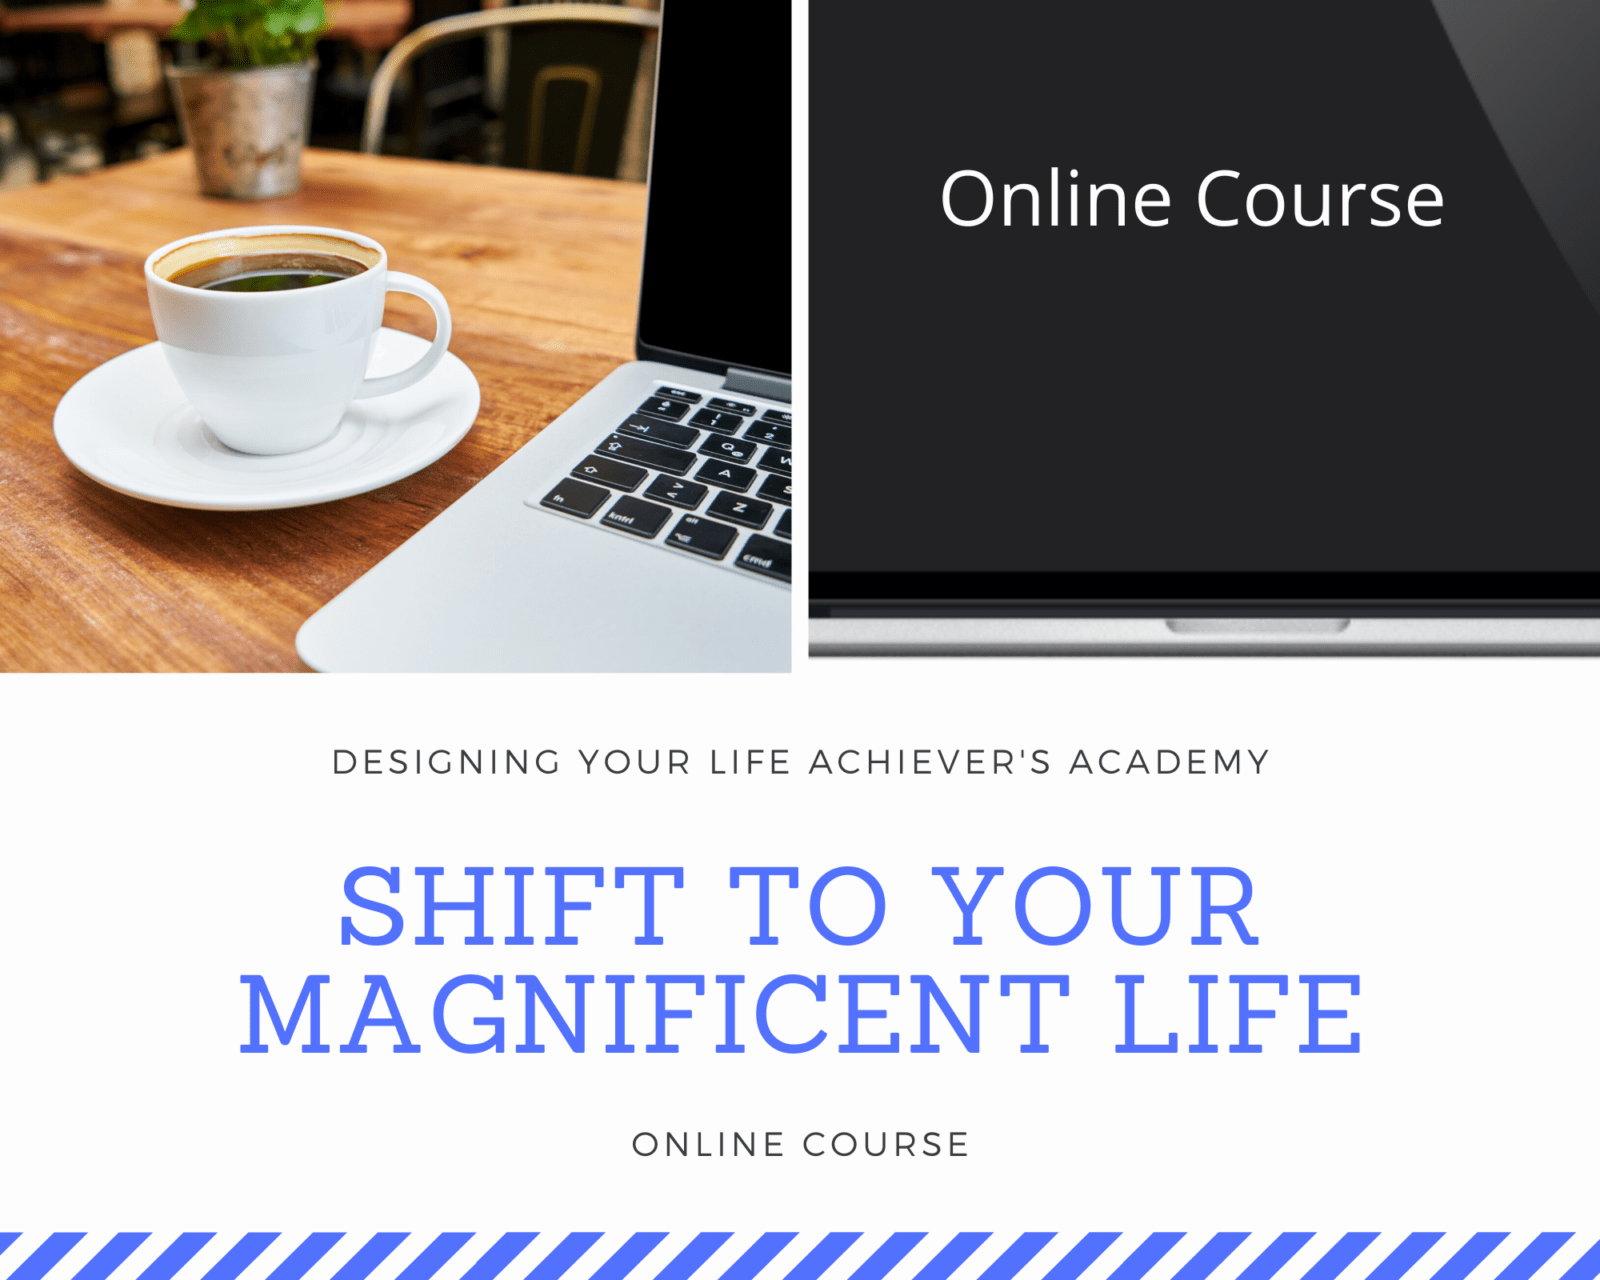 Shift to Your Magnificent Life Course